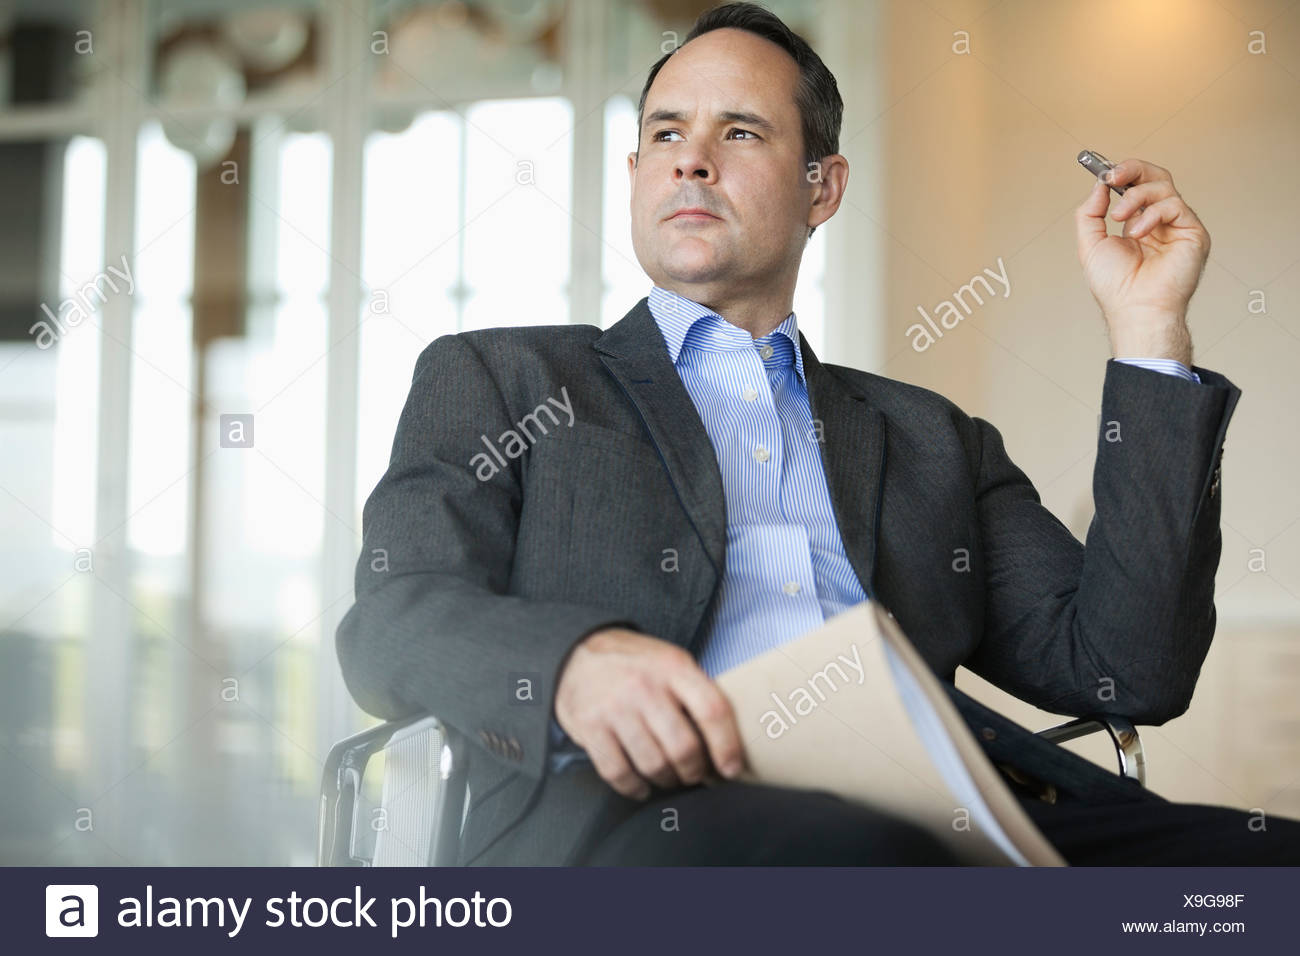 Thoughtful businessman sitting in chair - Stock Image